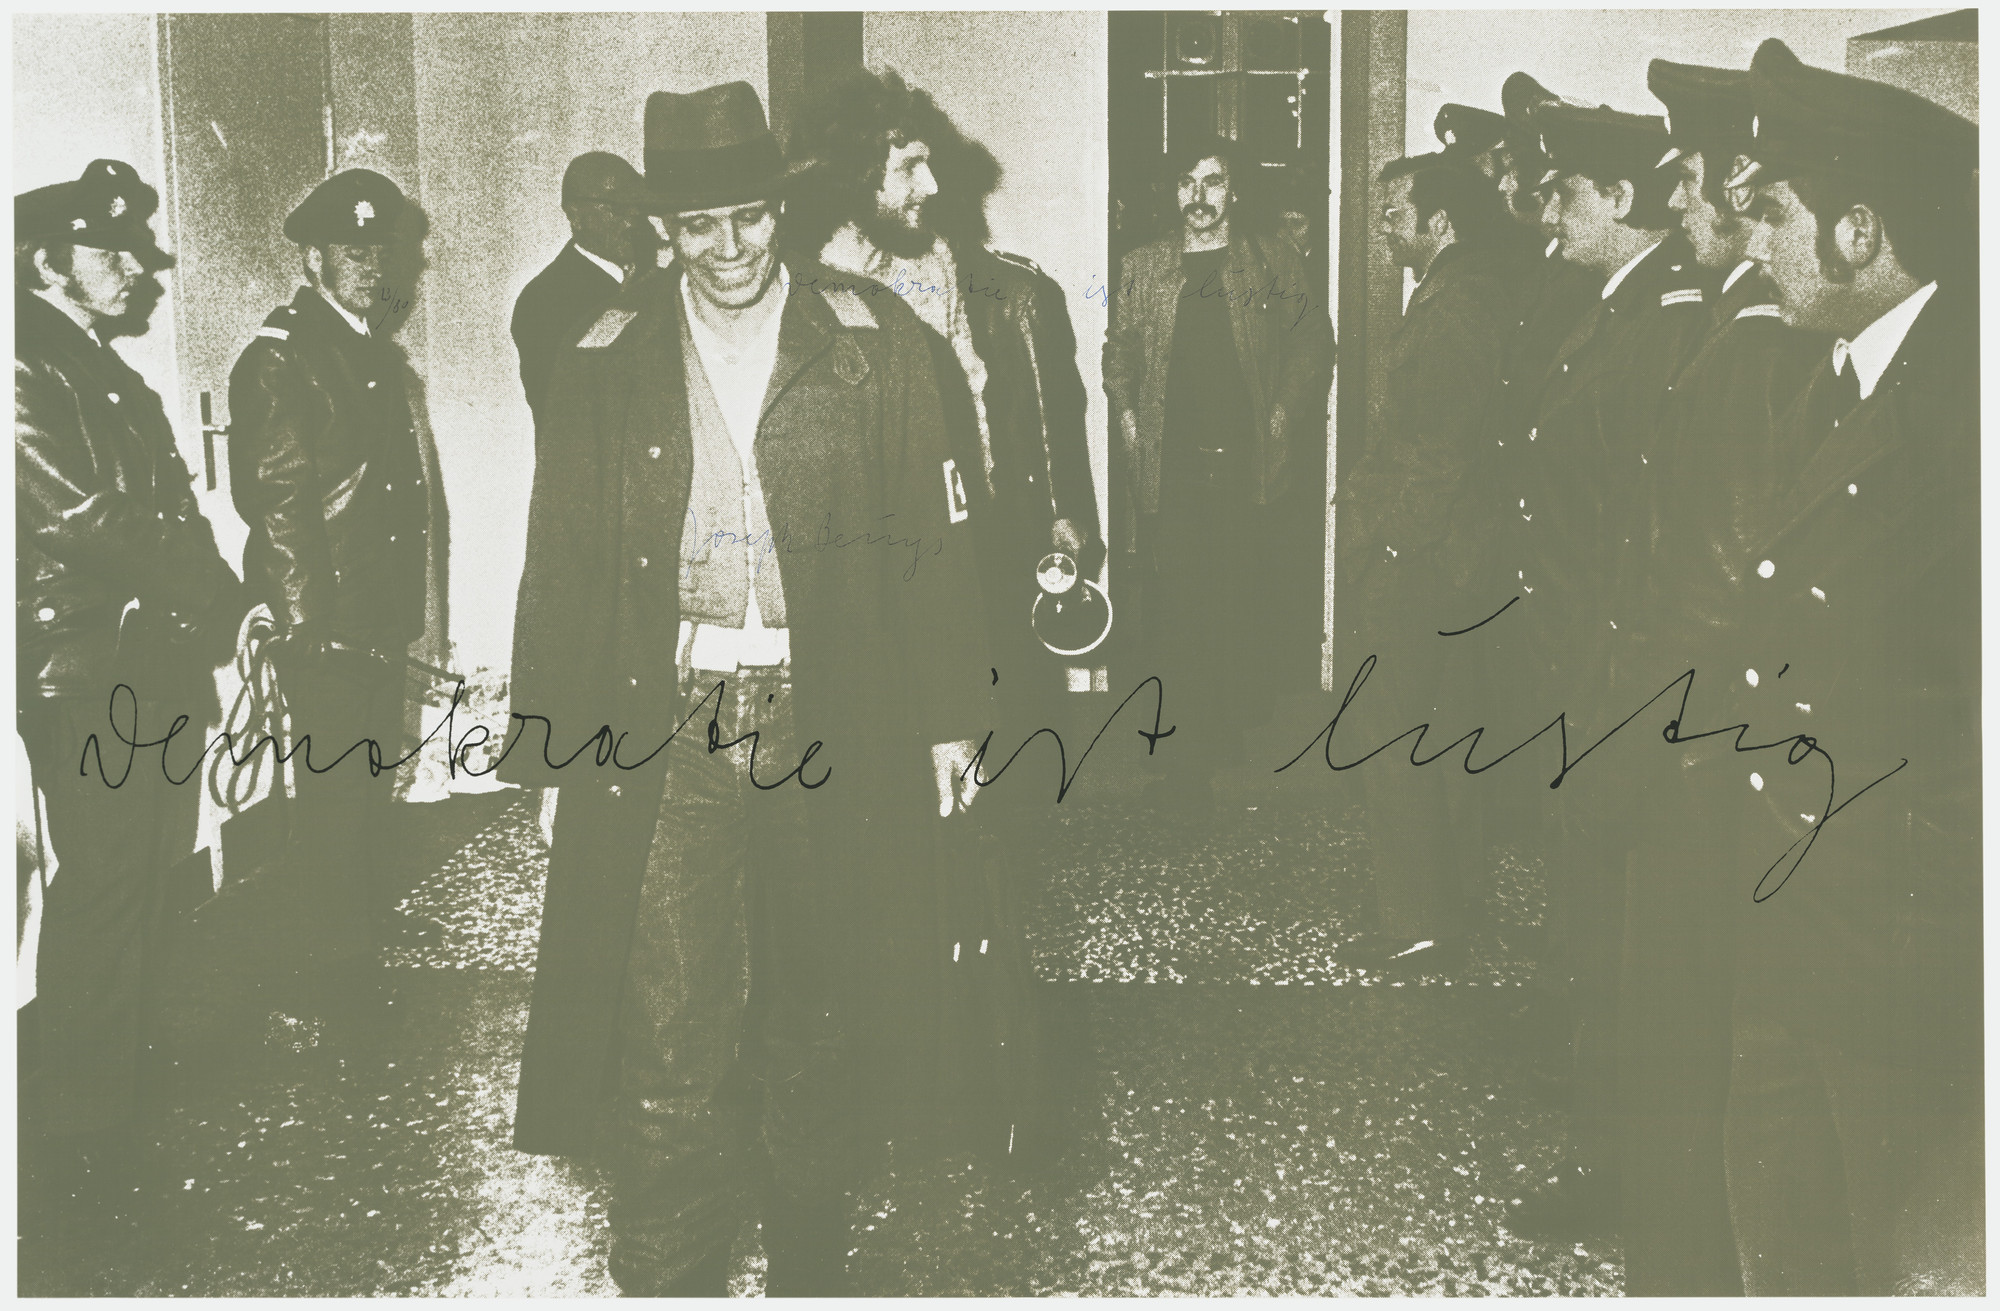 Joseph Beuys. Democracy Is Merry (Demokratie ist lustig). 1973